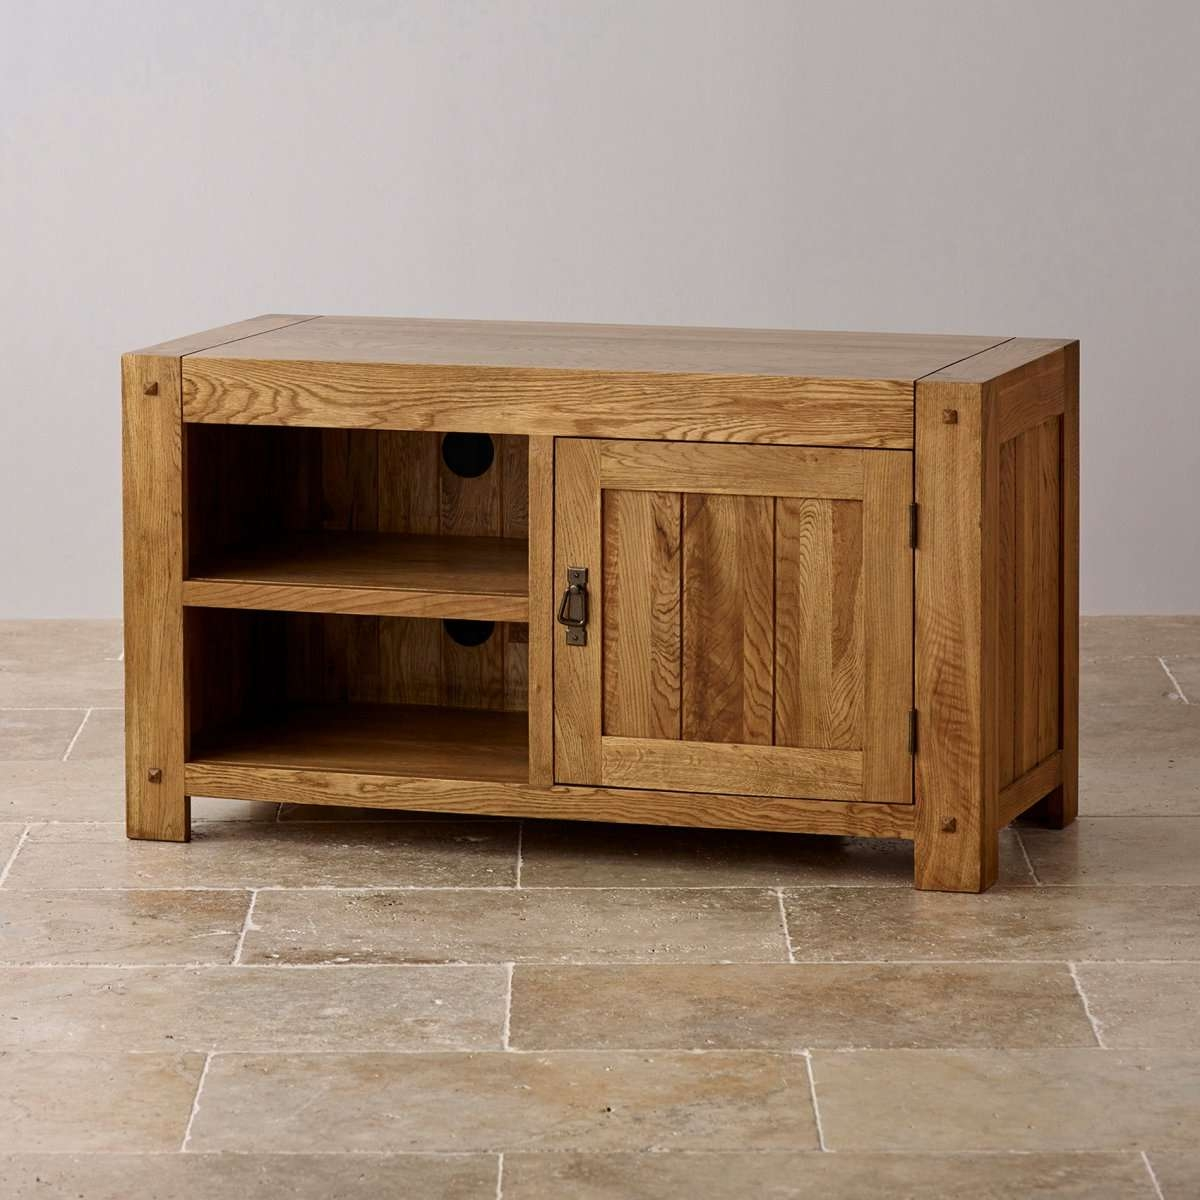 Bare Wood Tv Stand : Innovative Designs Oak Tv Console – Marku For Hardwood Tv Stands (View 3 of 15)